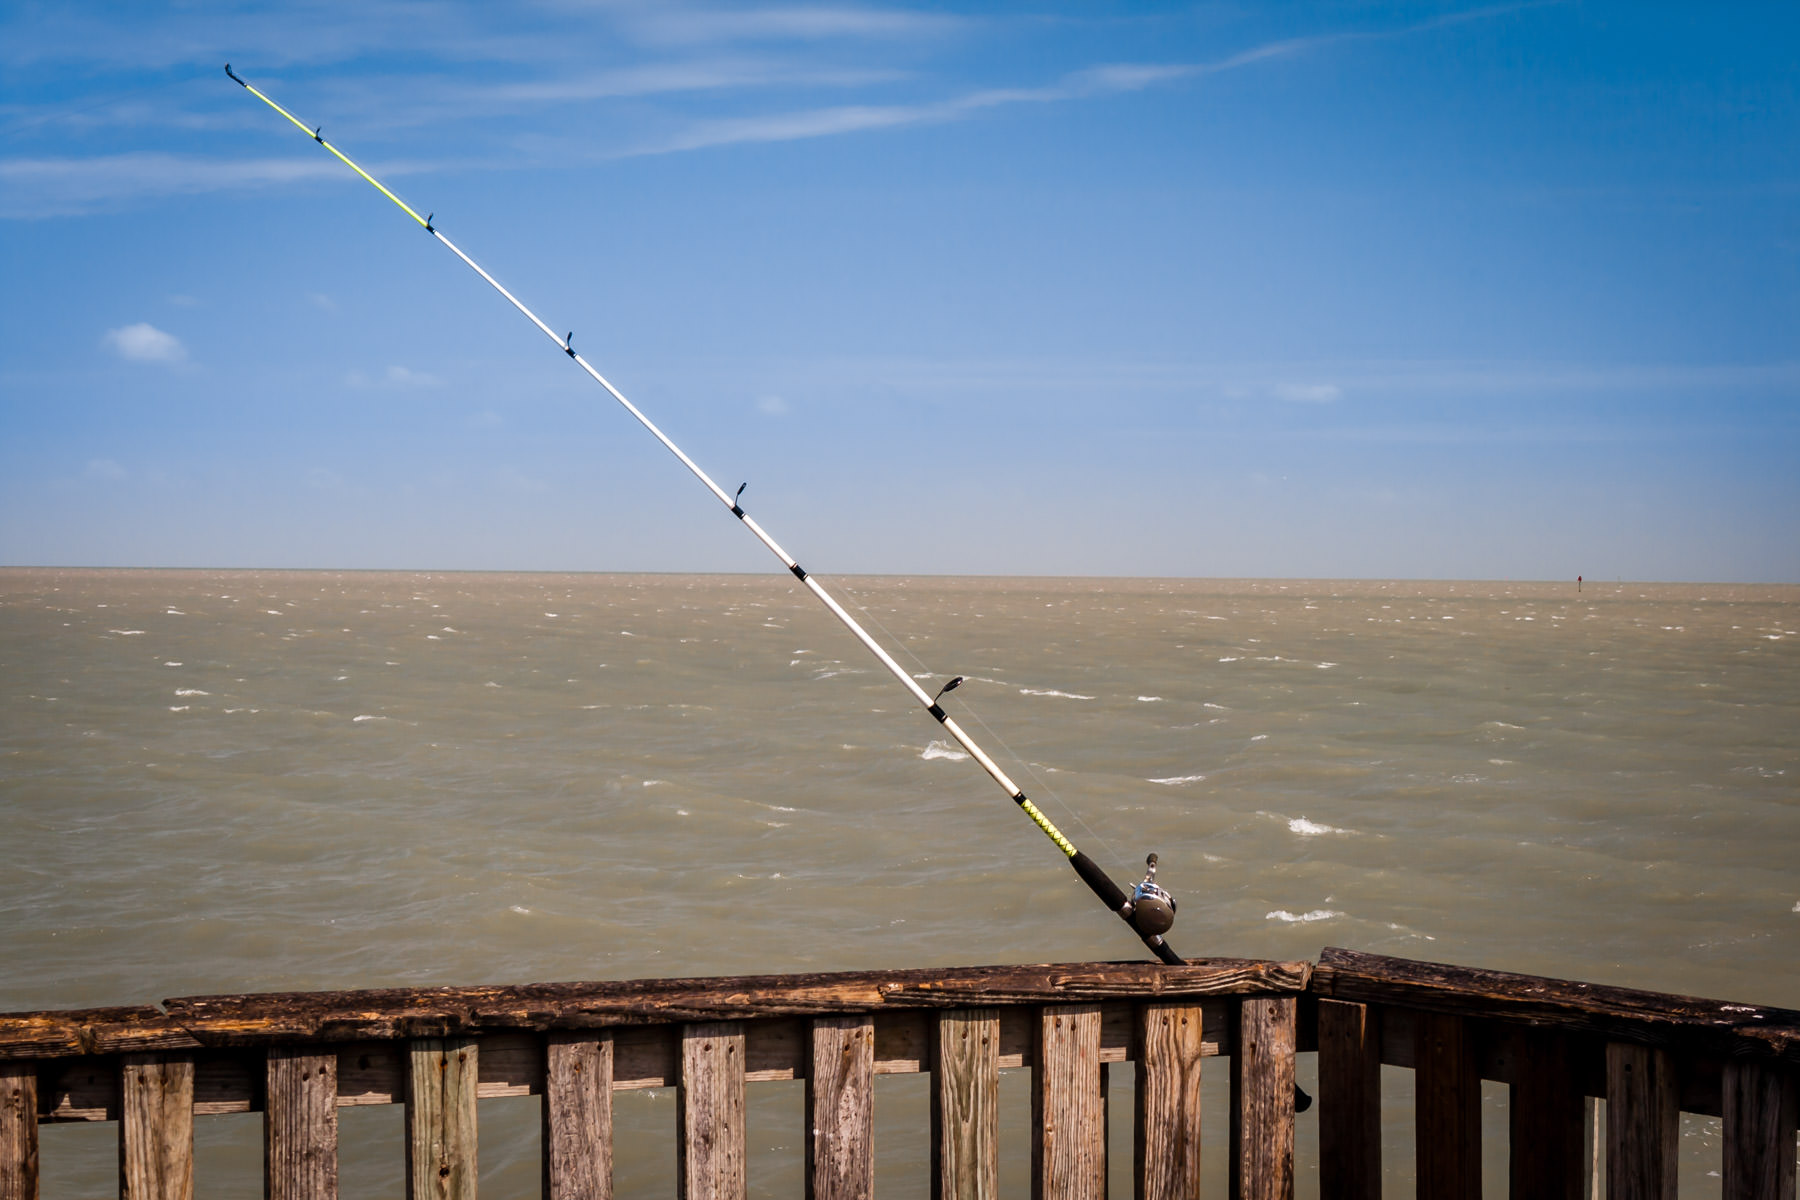 A fishing pole on a Port Isabel, Texas pier.